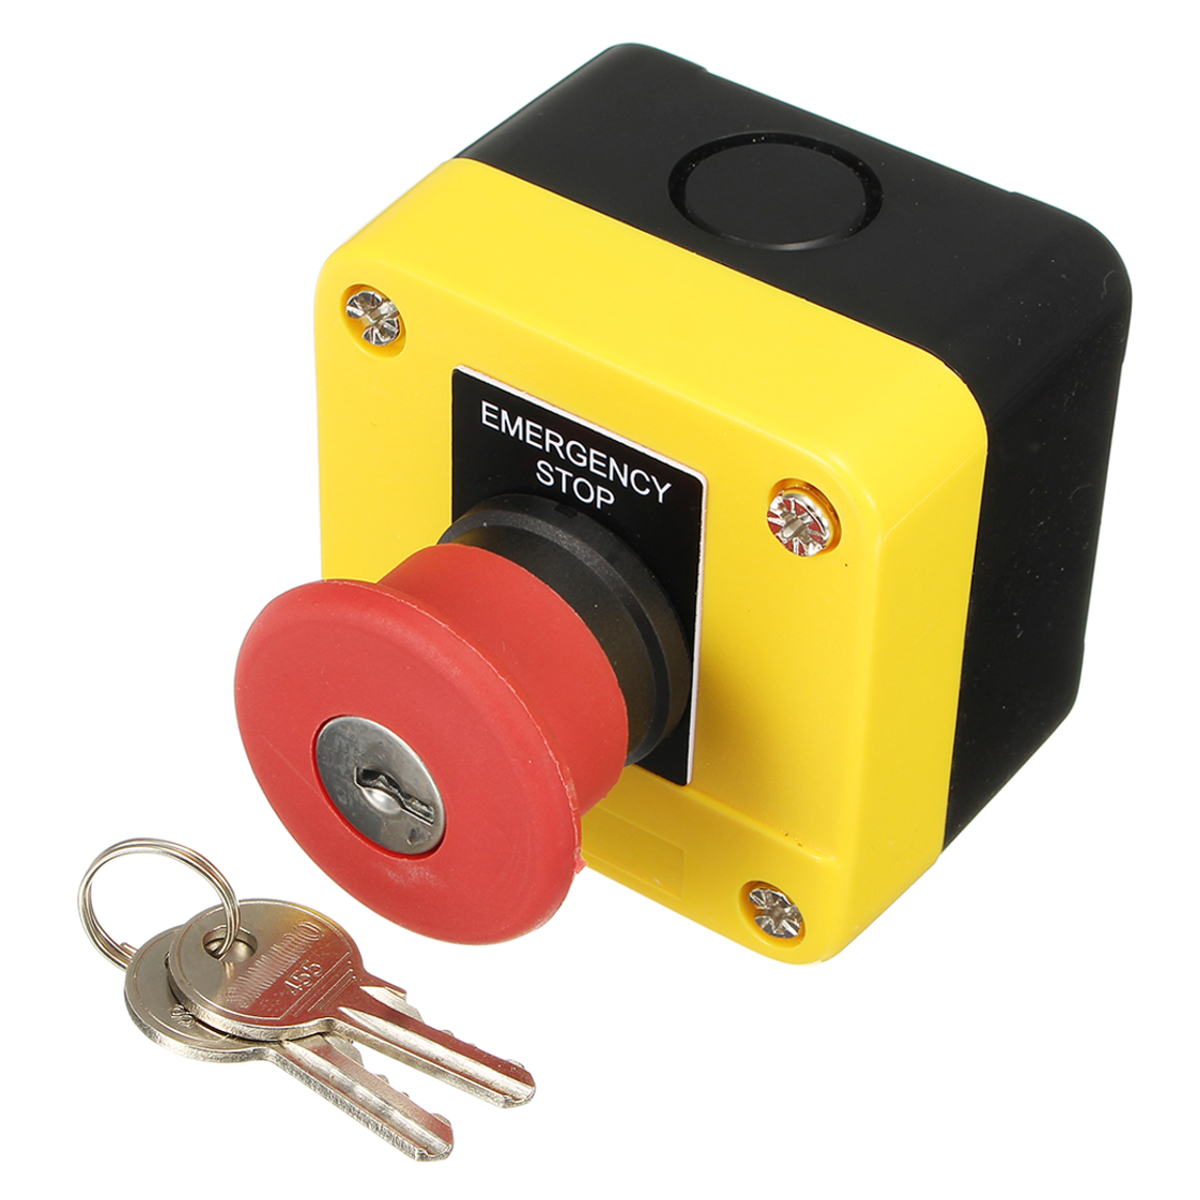 SAL-J184 Emergency Stop Station Key Release Reset Twist Button Danger Yellow